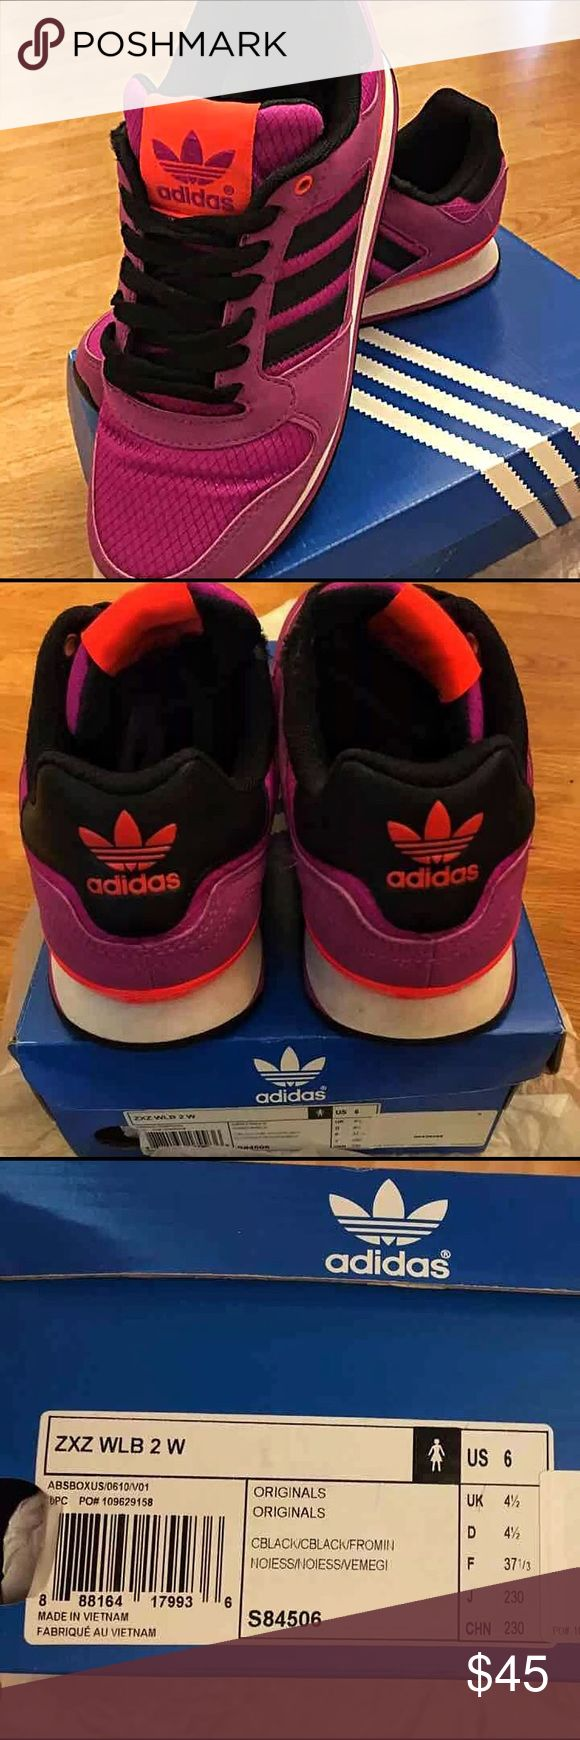 Adidas Original's ZXZ wlb 2 Color: purple/black/neon orange Running shoes that offers a speedy looks and lightweight build. Only worn once, very good condition. adidas Shoes Sneakers